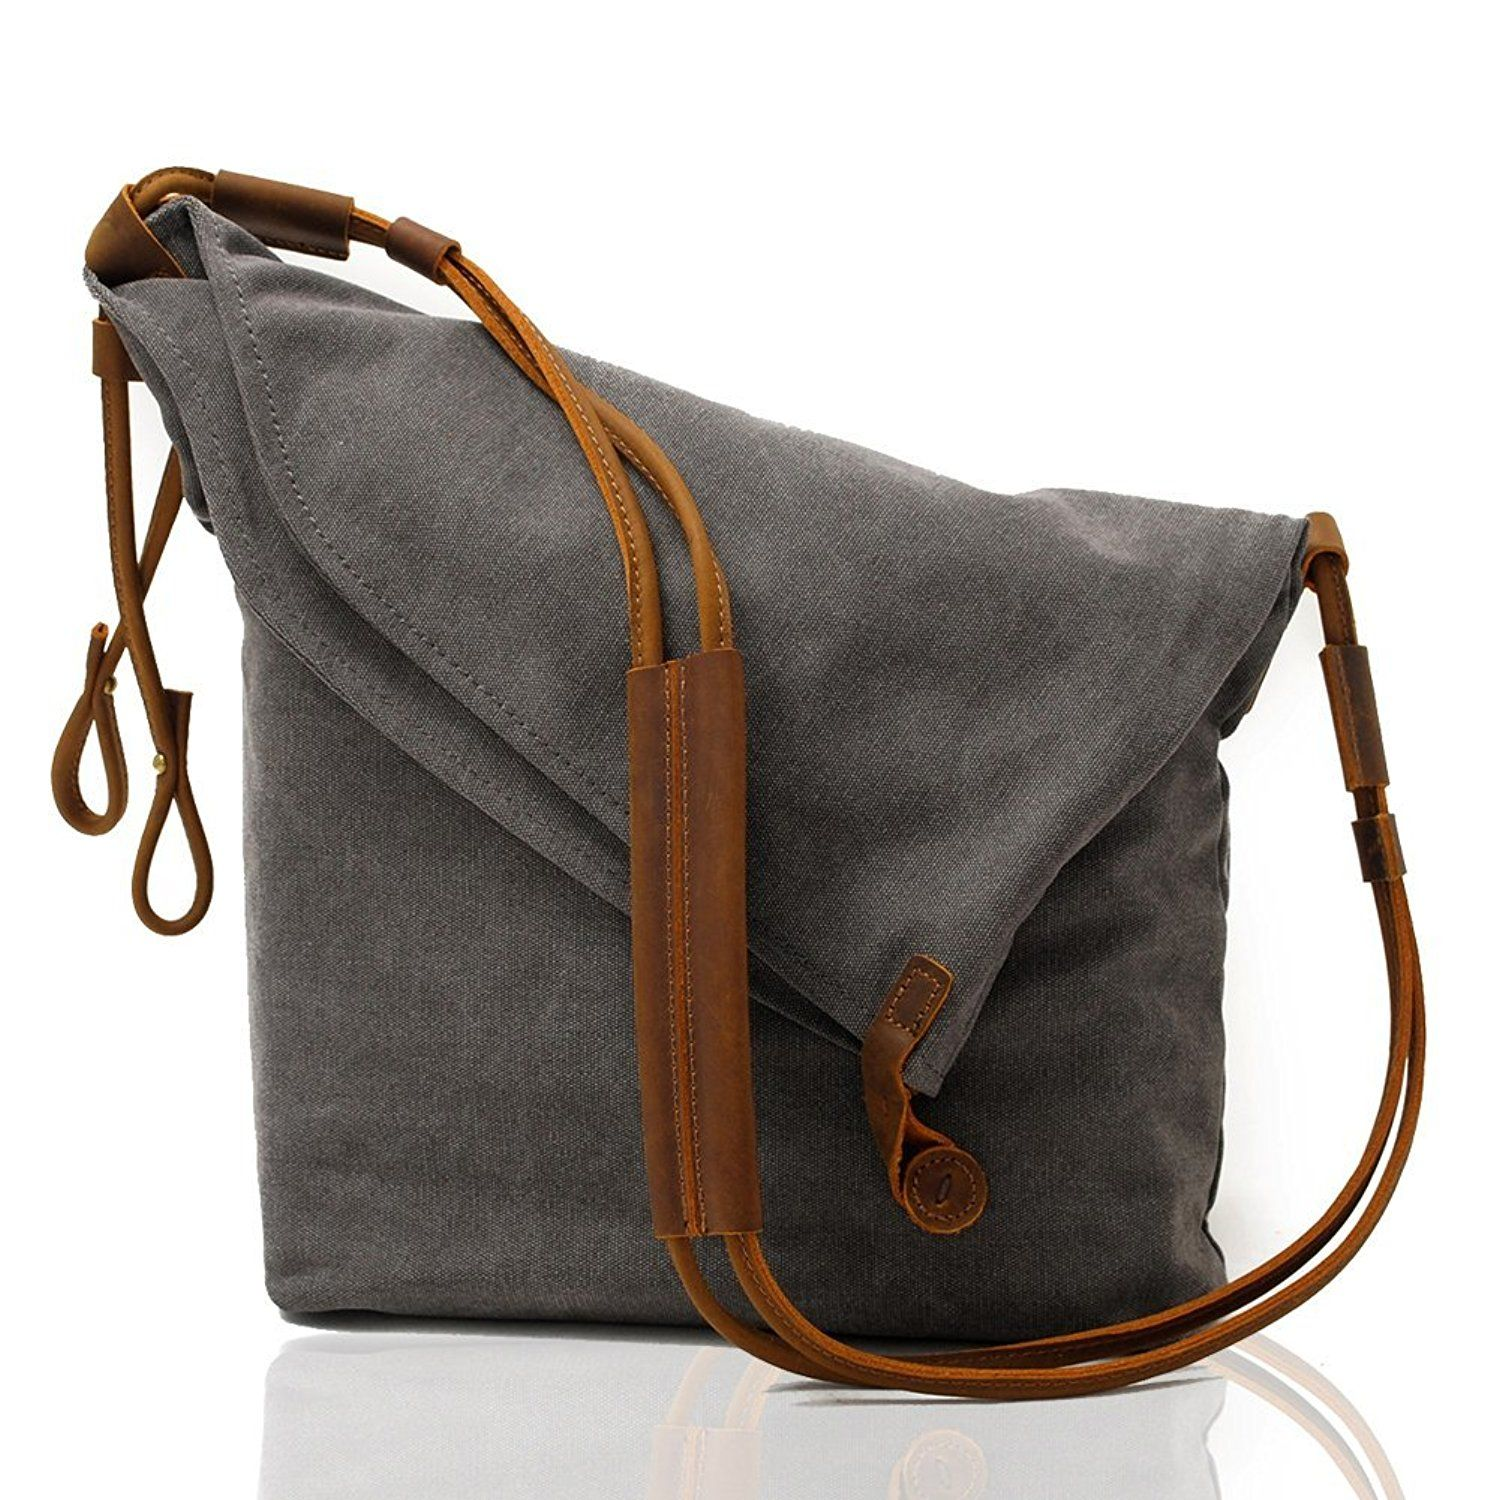 Kemy s Oversized Canvas Crossbody Satchel Bags for Women Hobo Handbags  Cross Body Tote Unisex Vintage Men Leather Messenger Bag Over the Shoulder  Purse ... cae4f2a4d